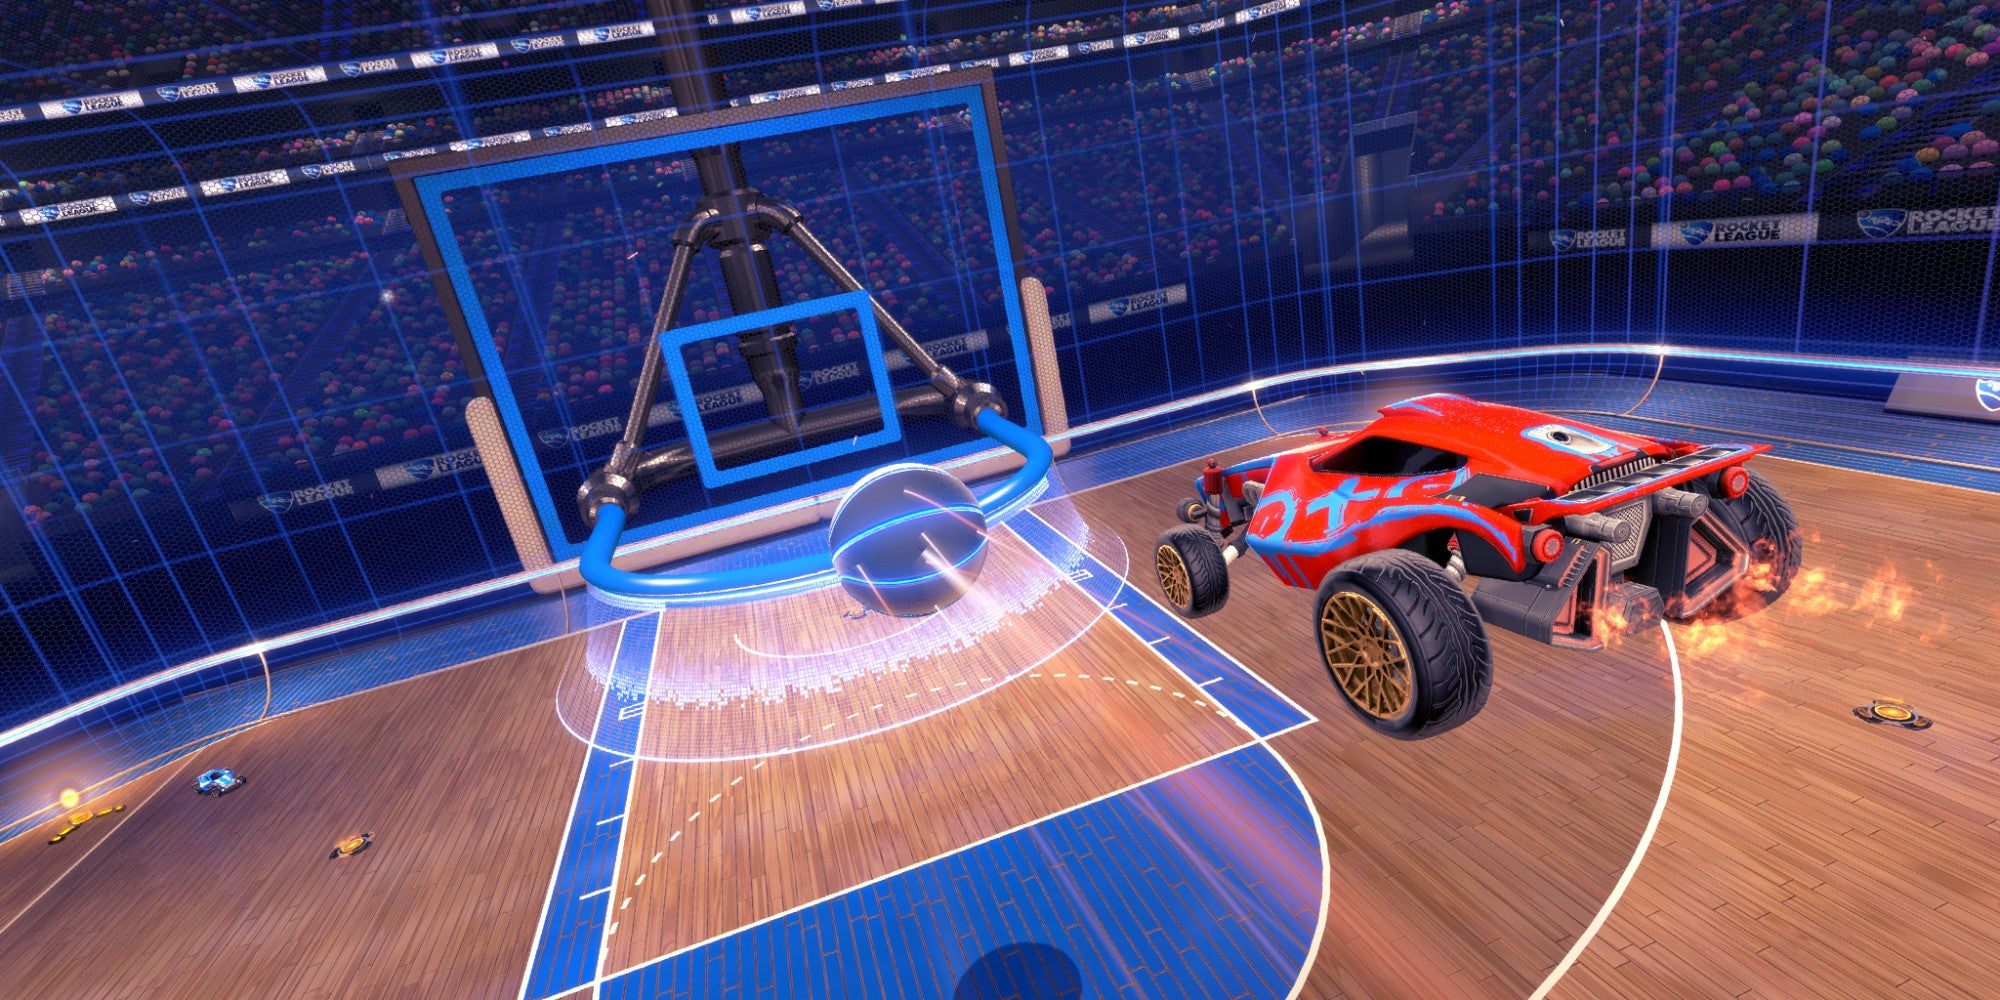 Rezultat iskanja slik za rocket league basketball